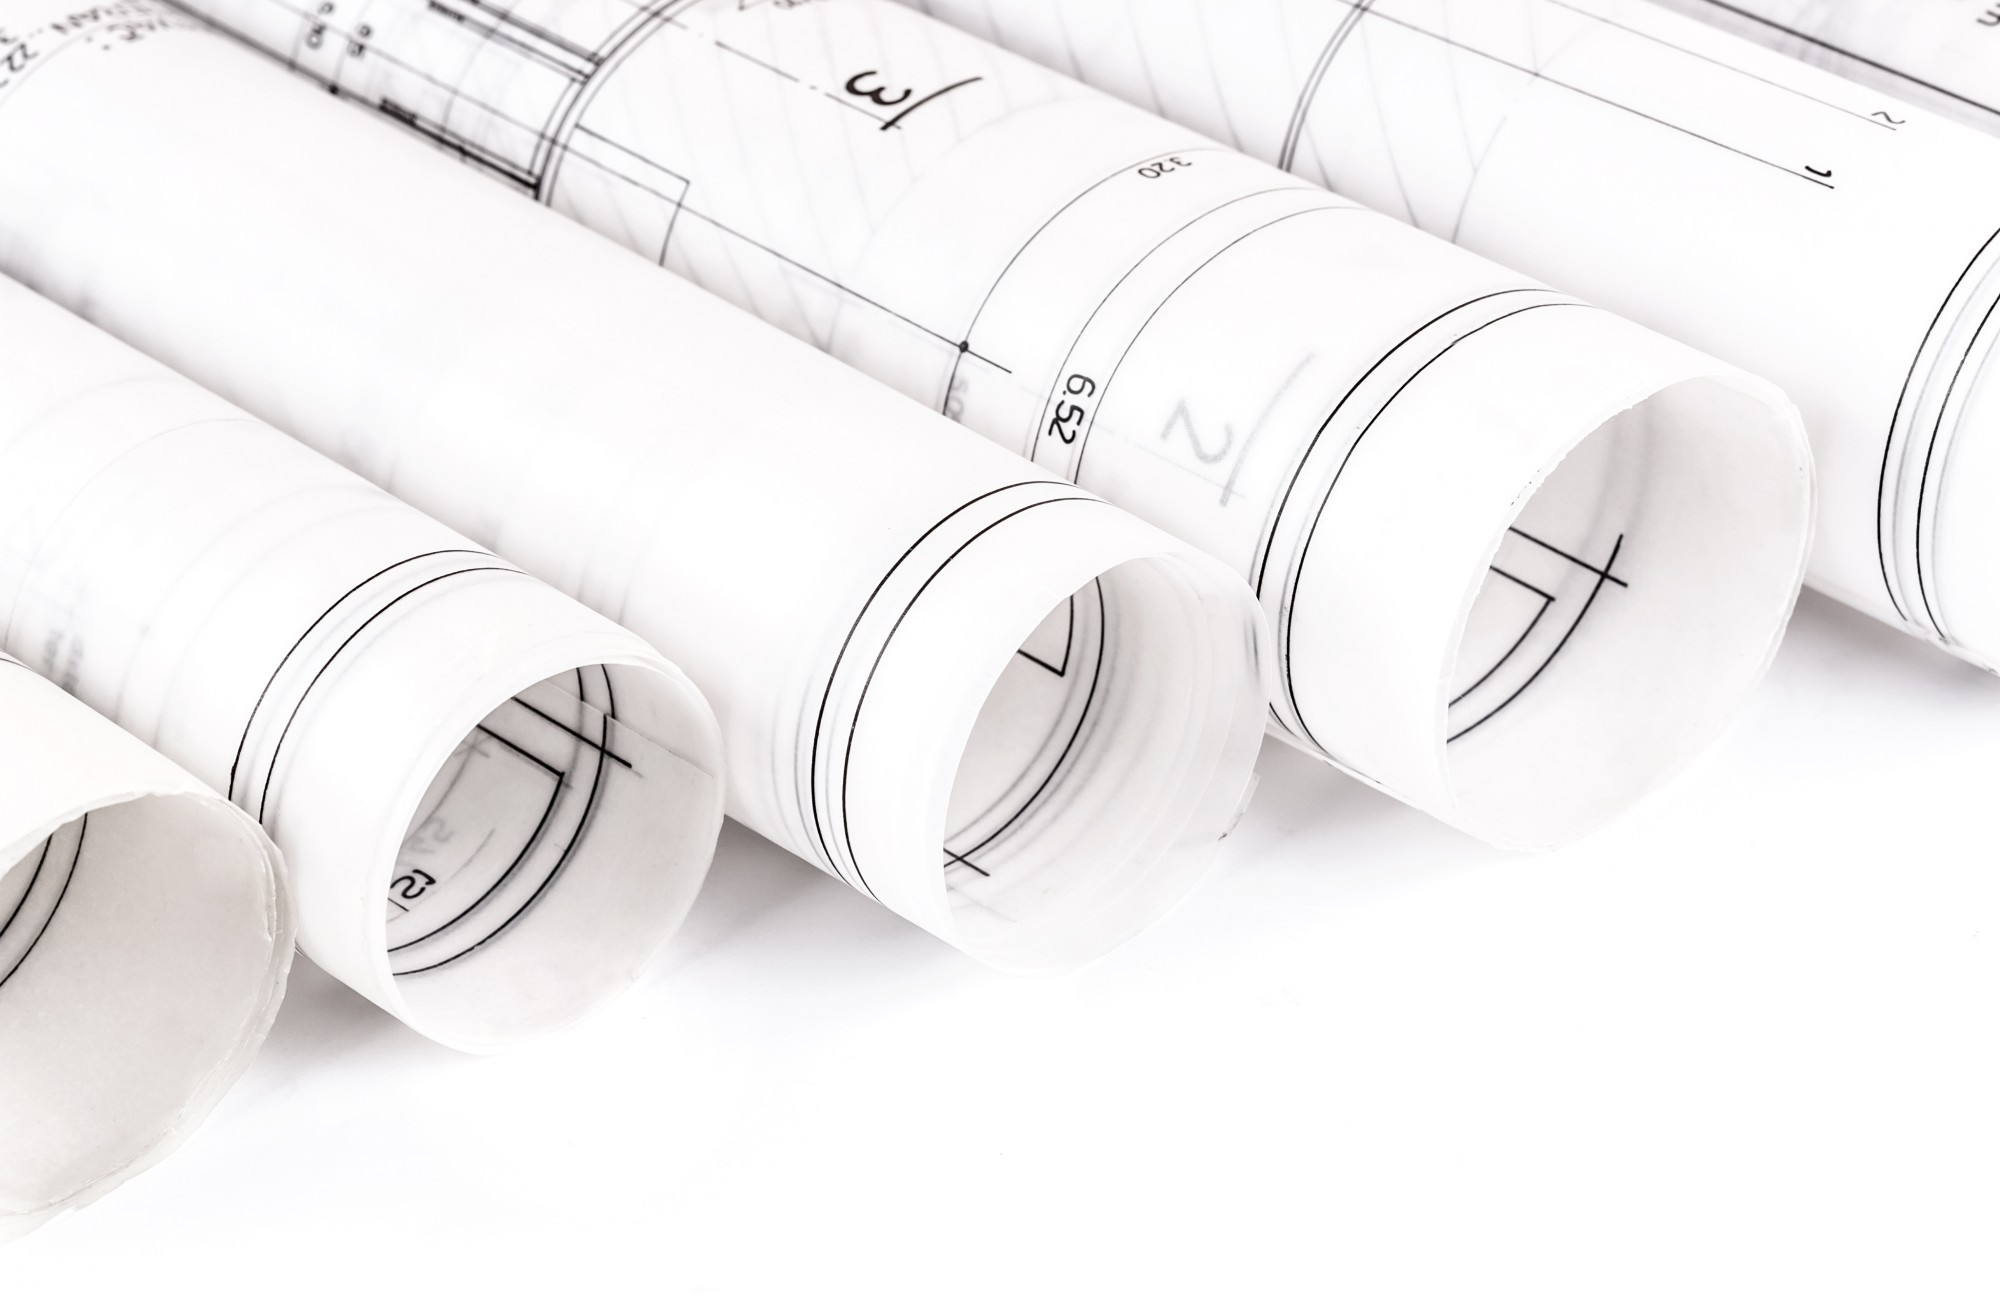 Rolled up environmental plans